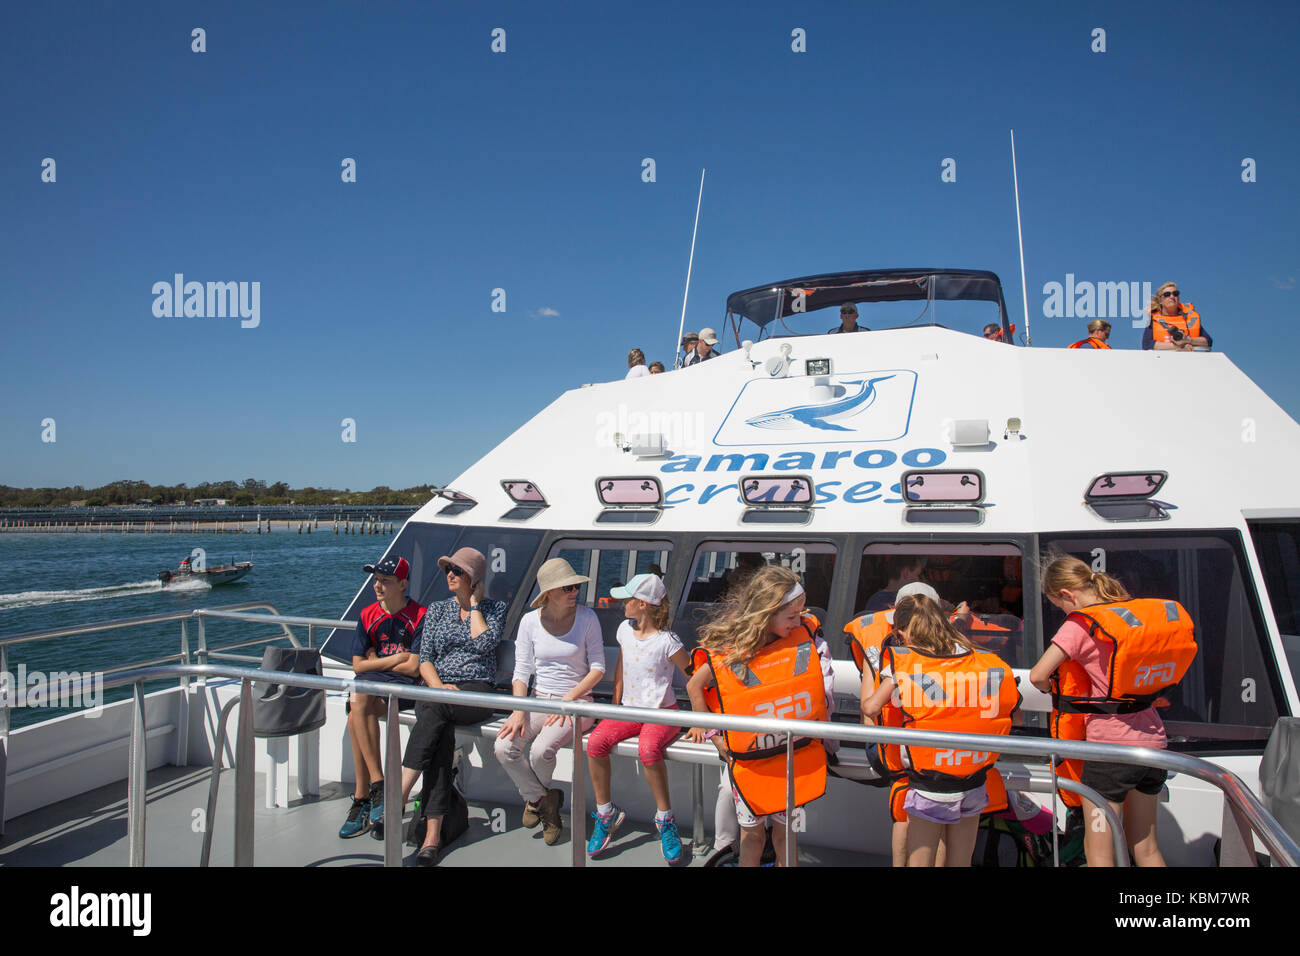 Adults and children on Amaroo cruises vessel heading out for whale watching tour at Forster, new south wales,australia - Stock Image